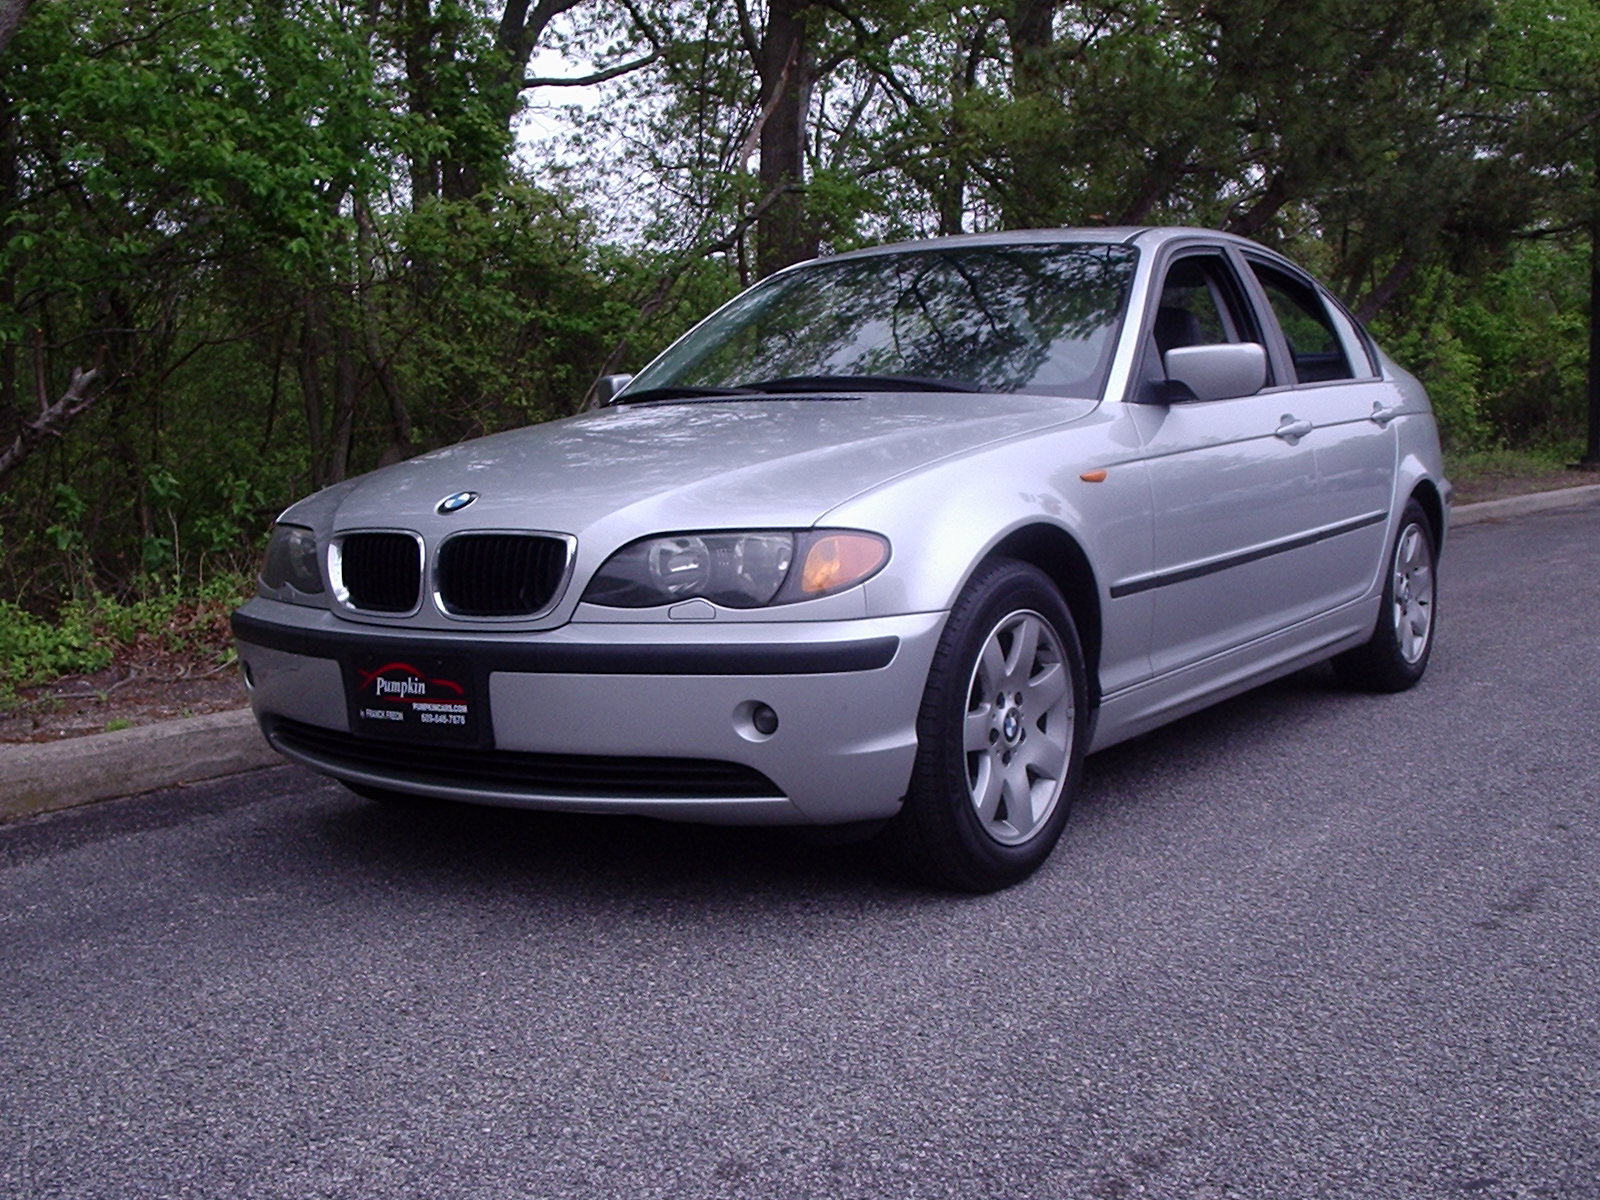 Pumpkin Fine Cars and Exotics: 2003 BMW 325i